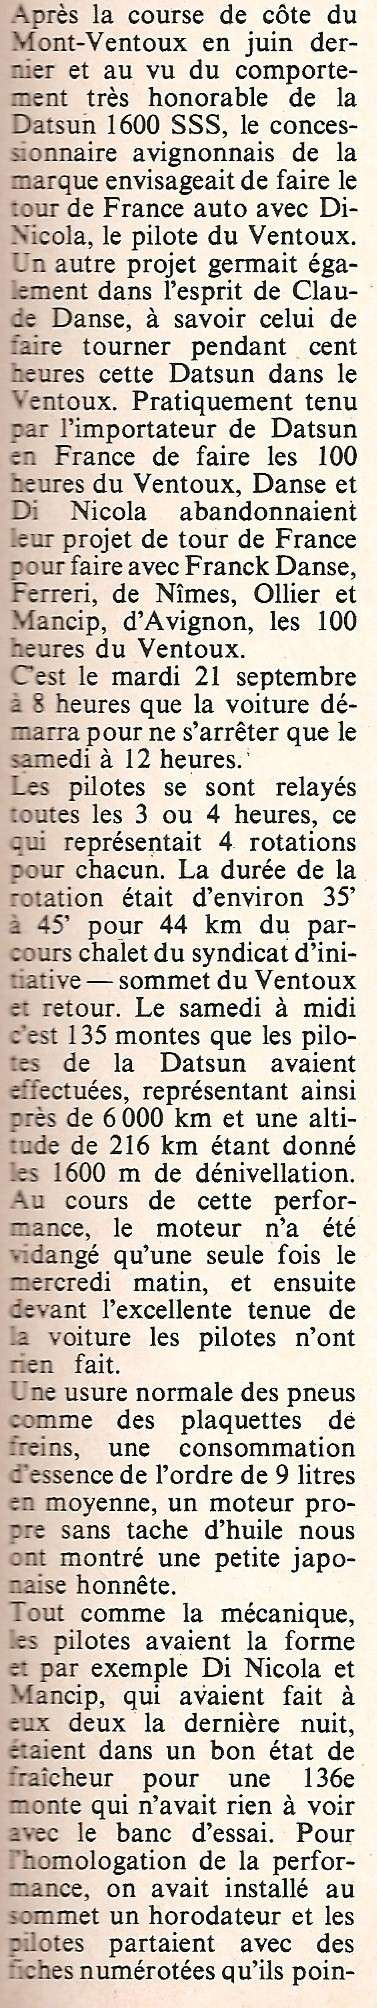 TOPIC OFFICIEL DATSUN 510... Voiture mythique! - Page 2 11_19_12